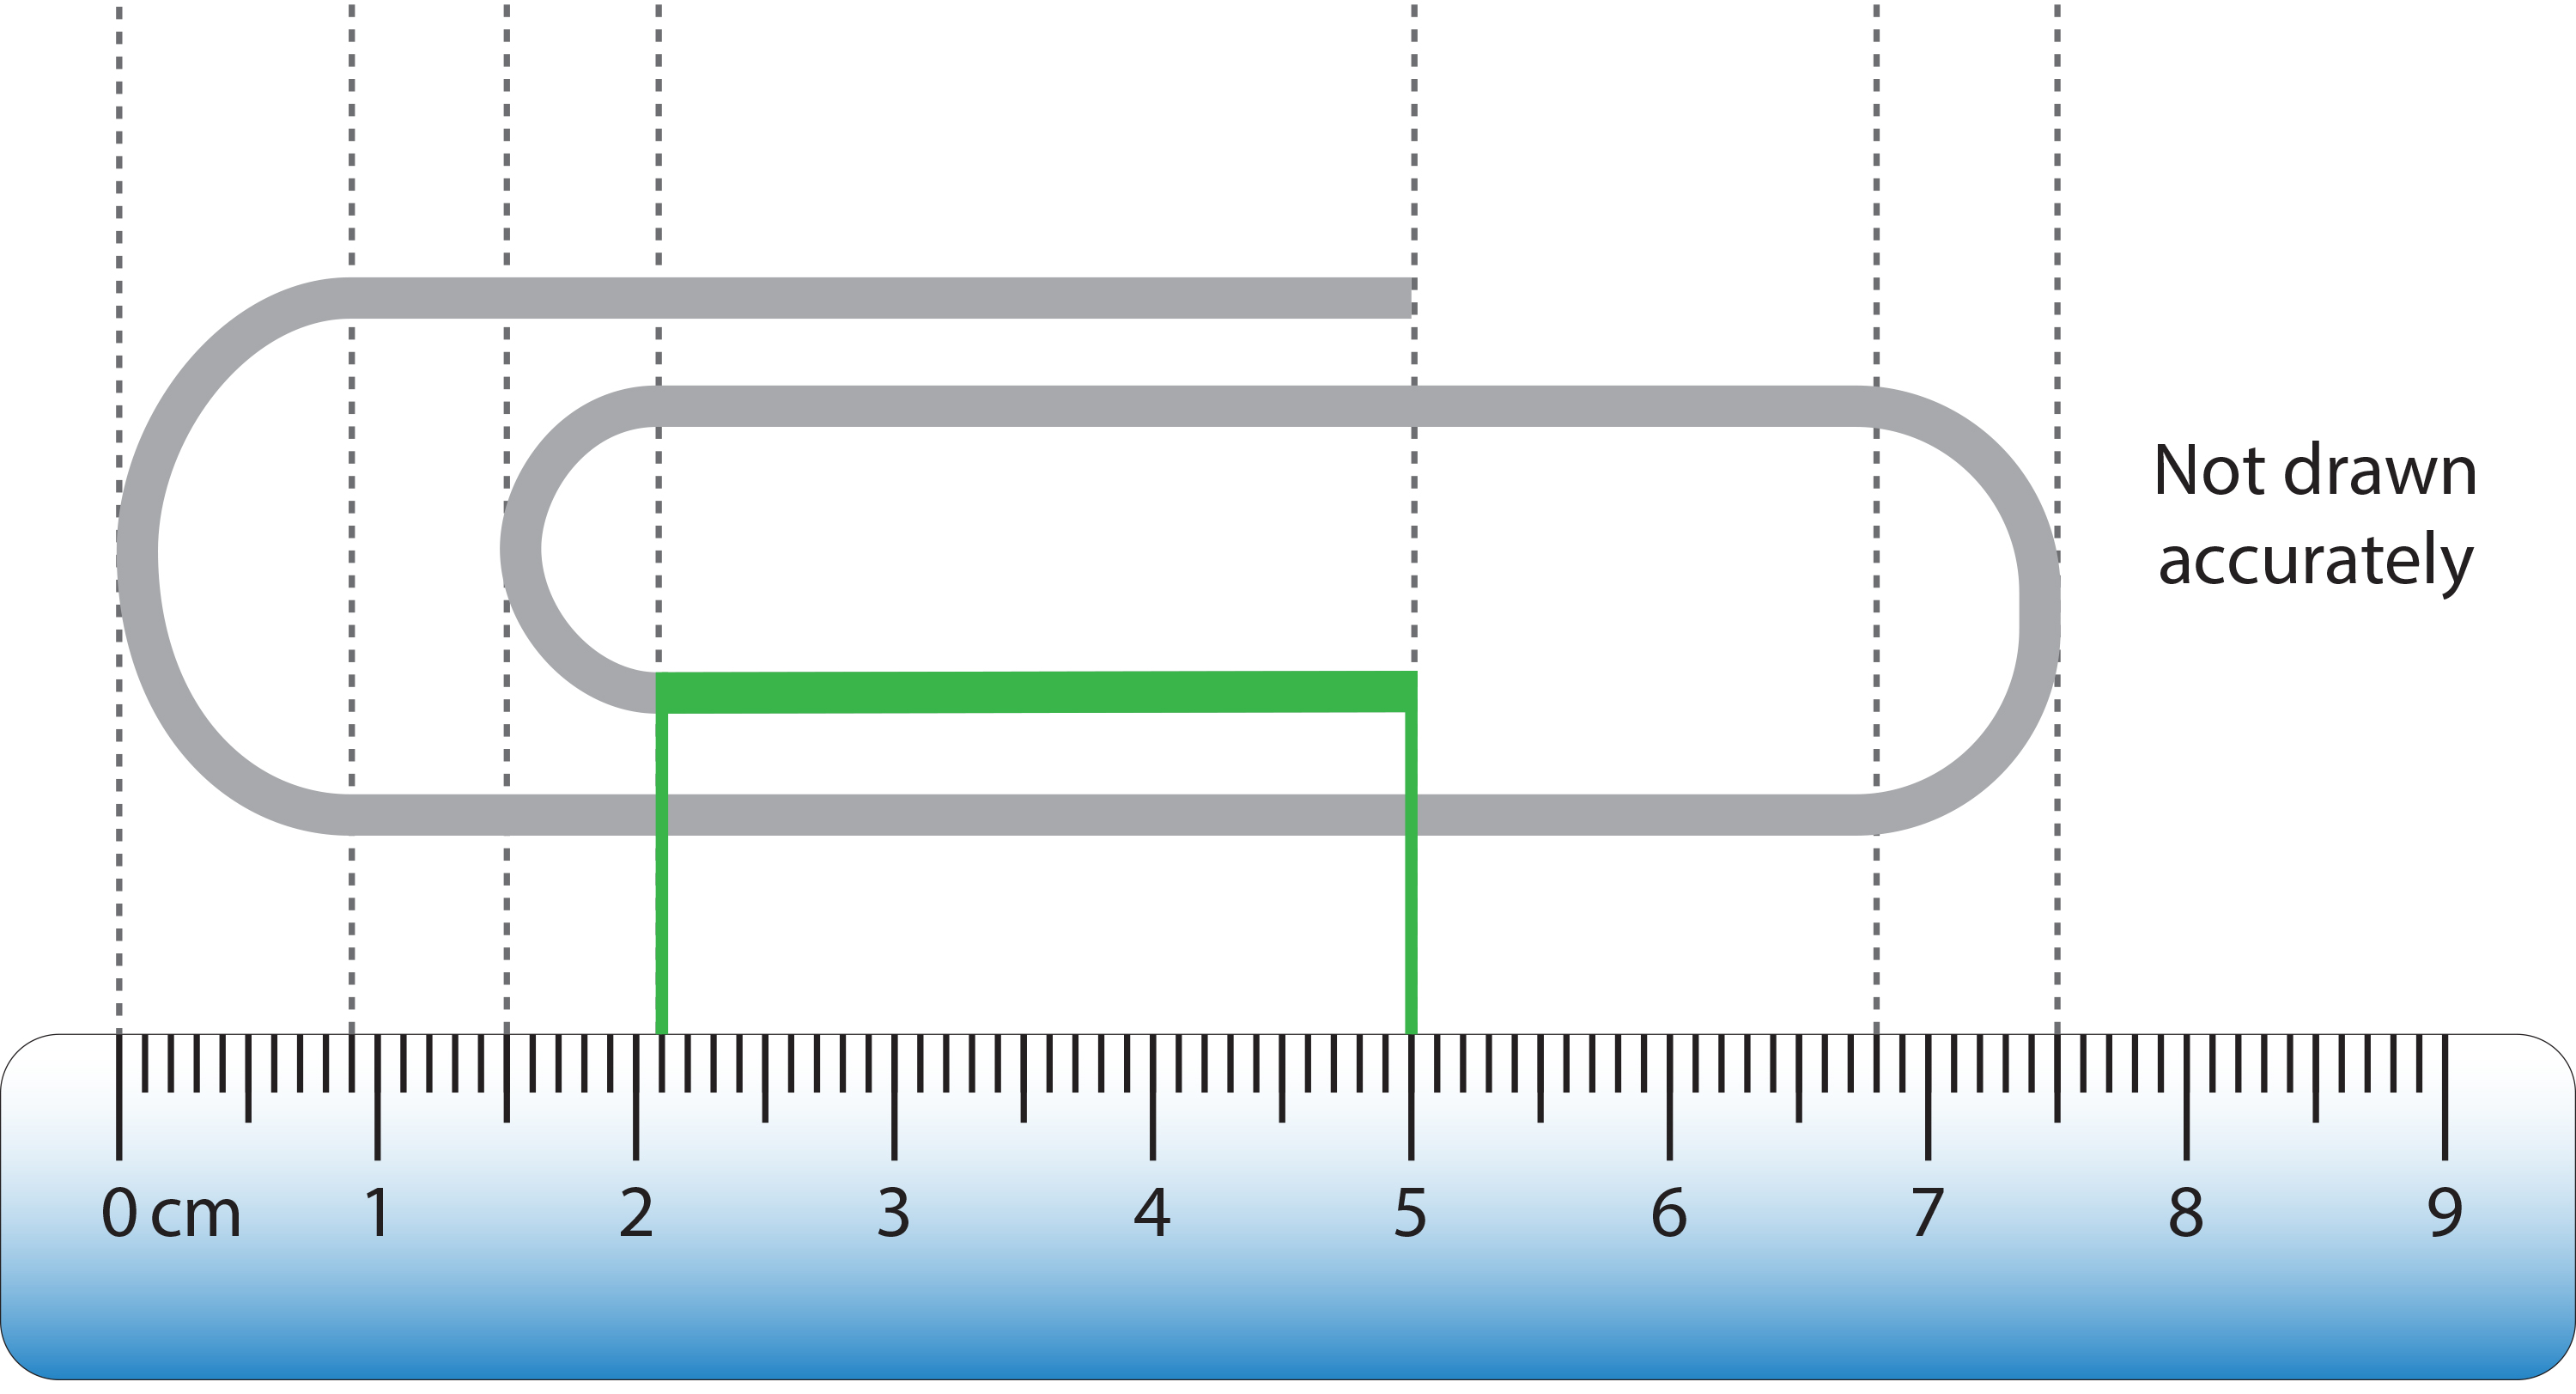 The green line measures 2.9cm